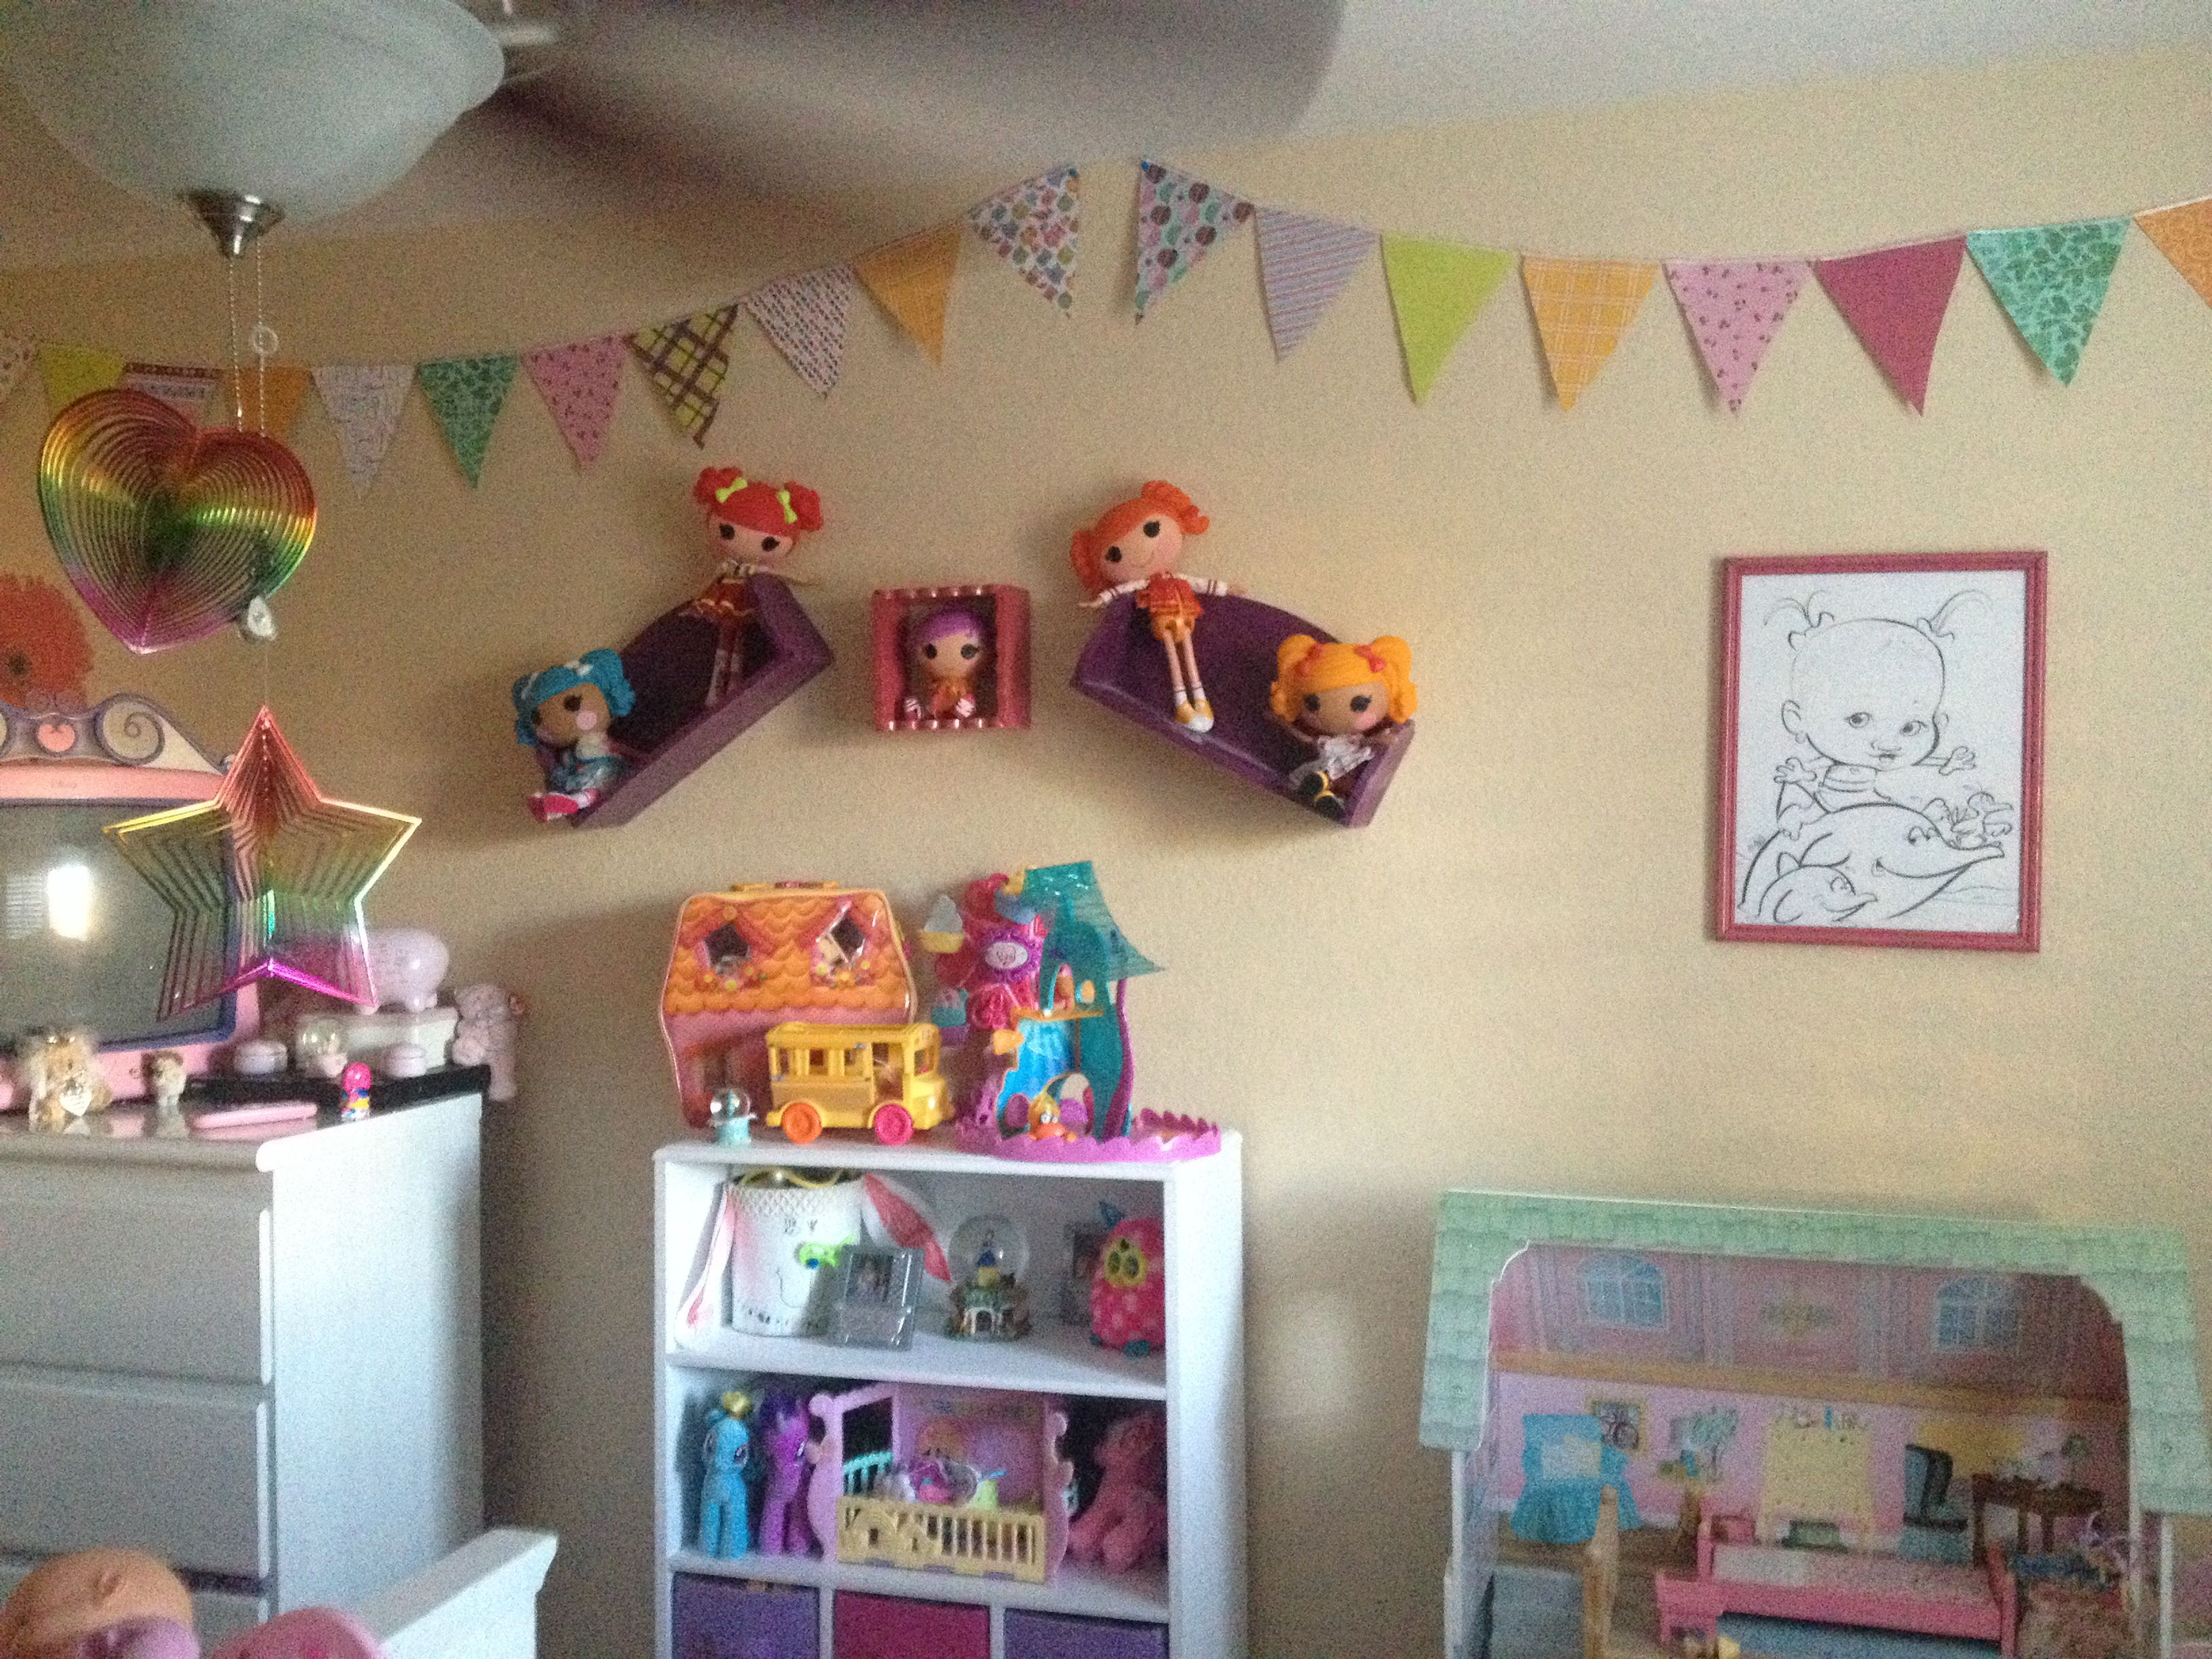 Scrapbook paper bunting - and hung some shelves crooked for a somewhat different effect !